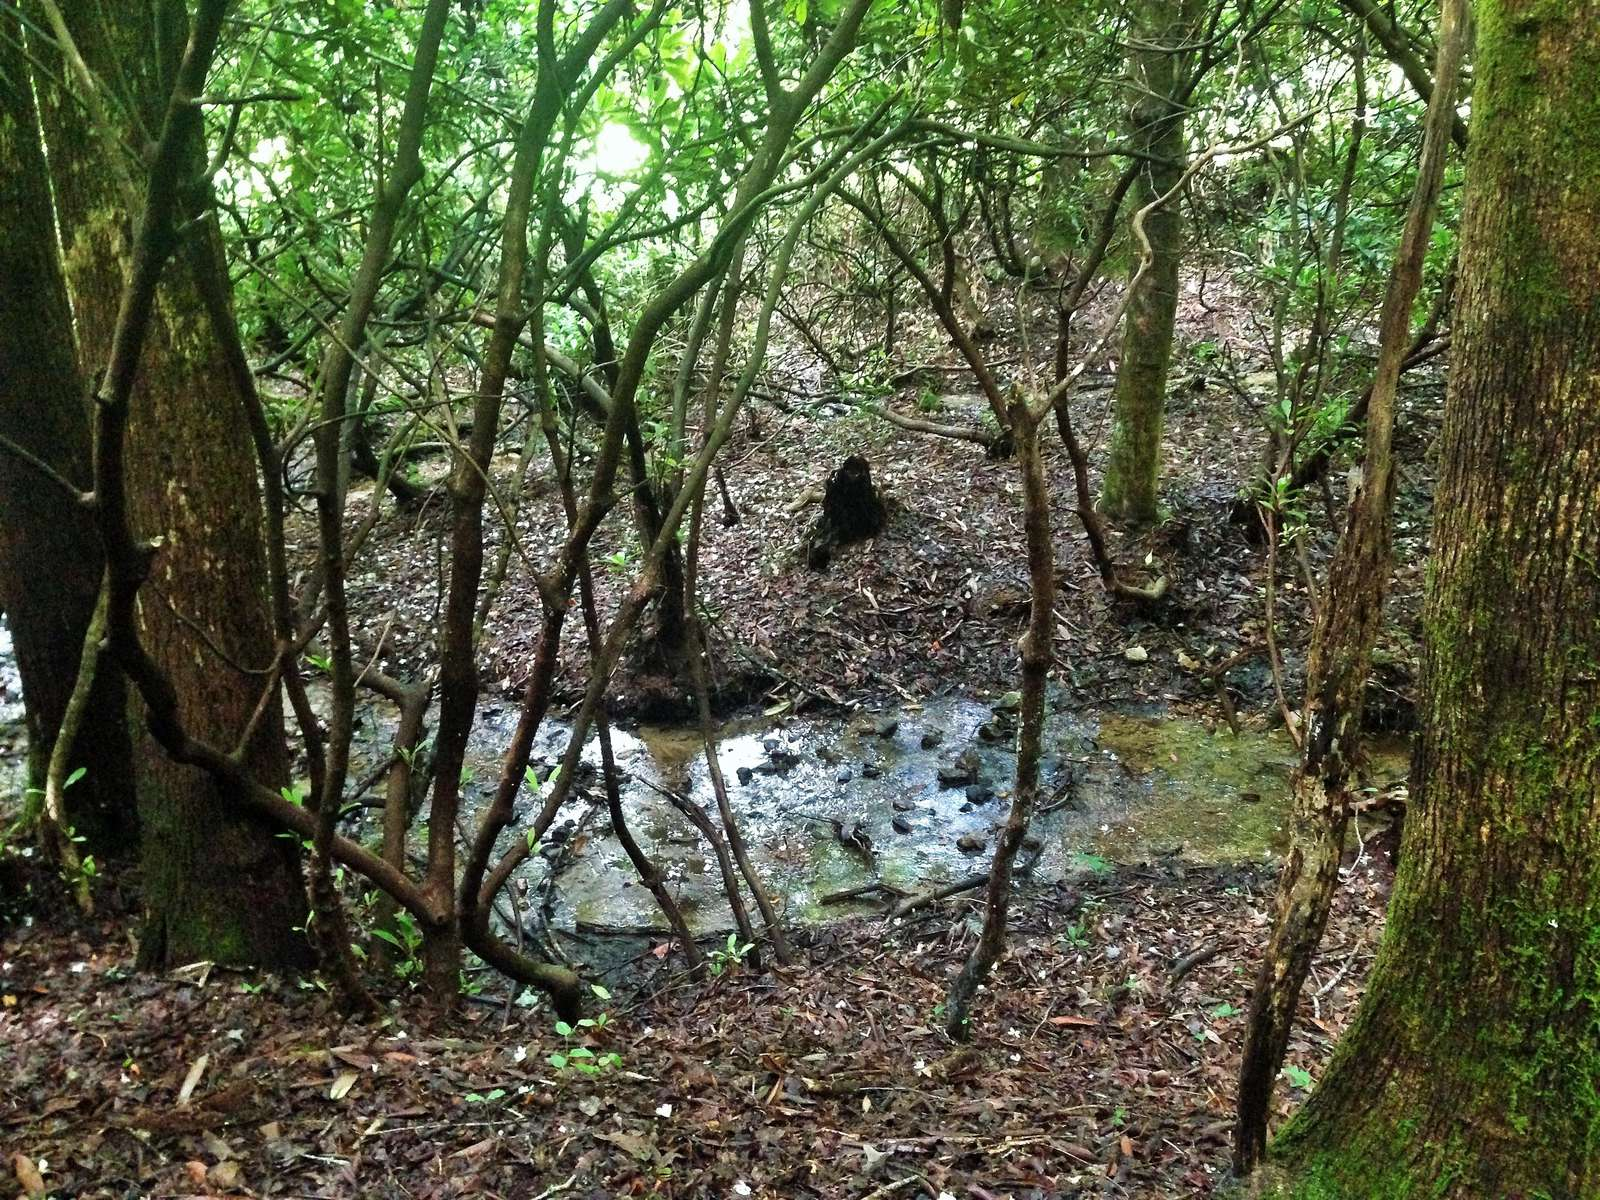 The trail from the back yard leads to a lovely little Creek under a canopy of shade trees